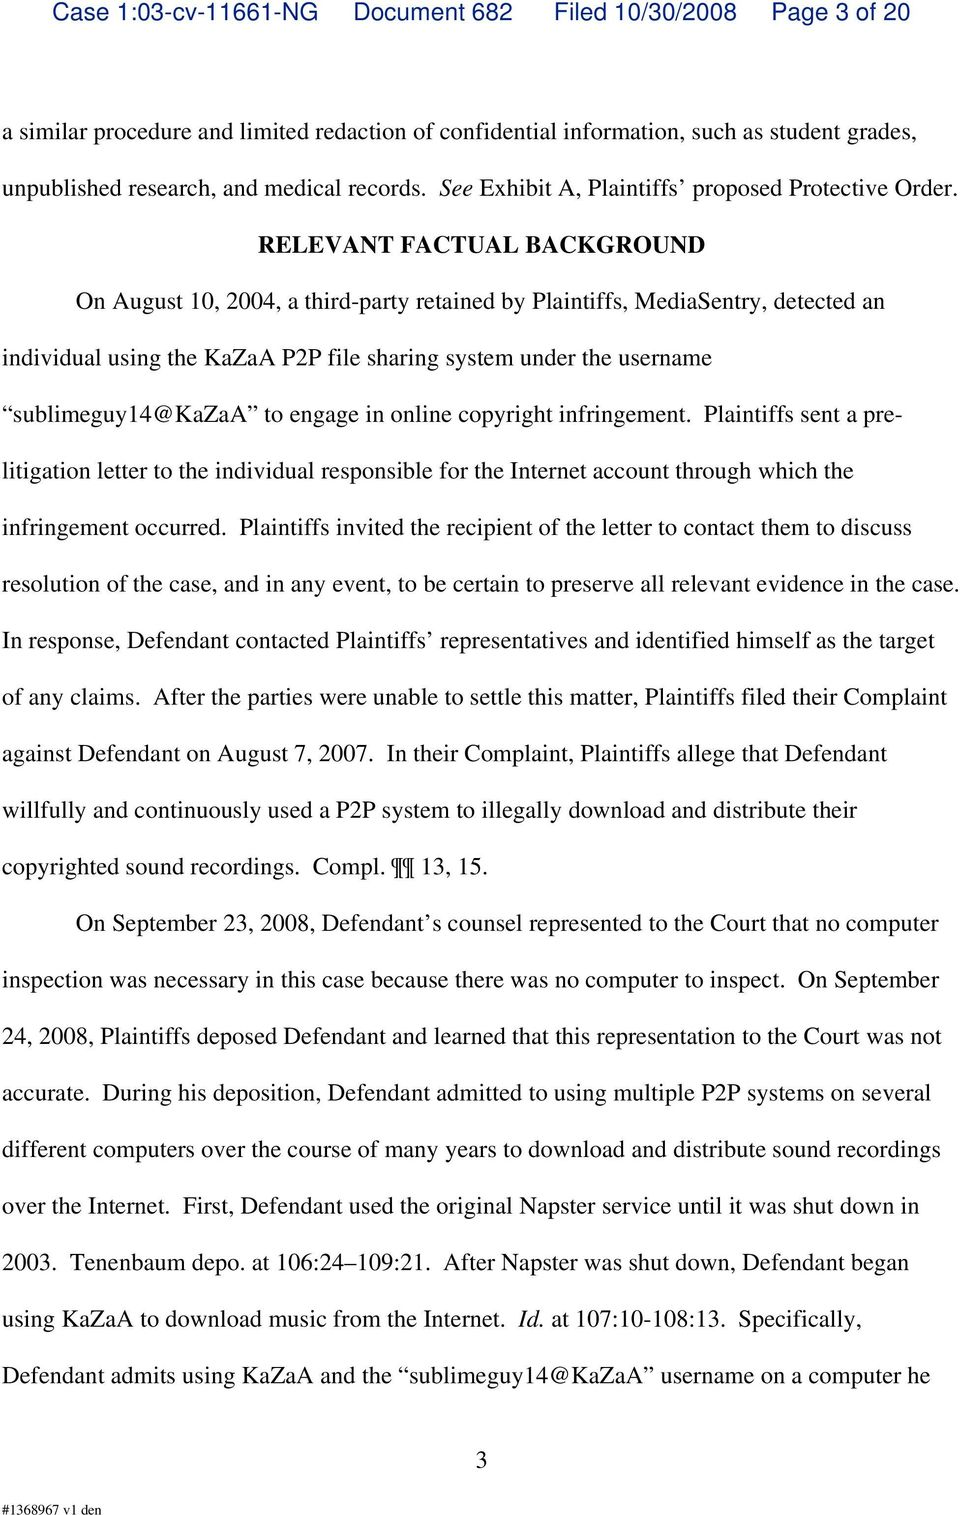 RELEVANT FACTUAL BACKGROUND On August 10, 2004, a third-party retained by Plaintiffs, MediaSentry, detected an individual using the KaZaA P2P file sharing system under the username sublimeguy14@kazaa